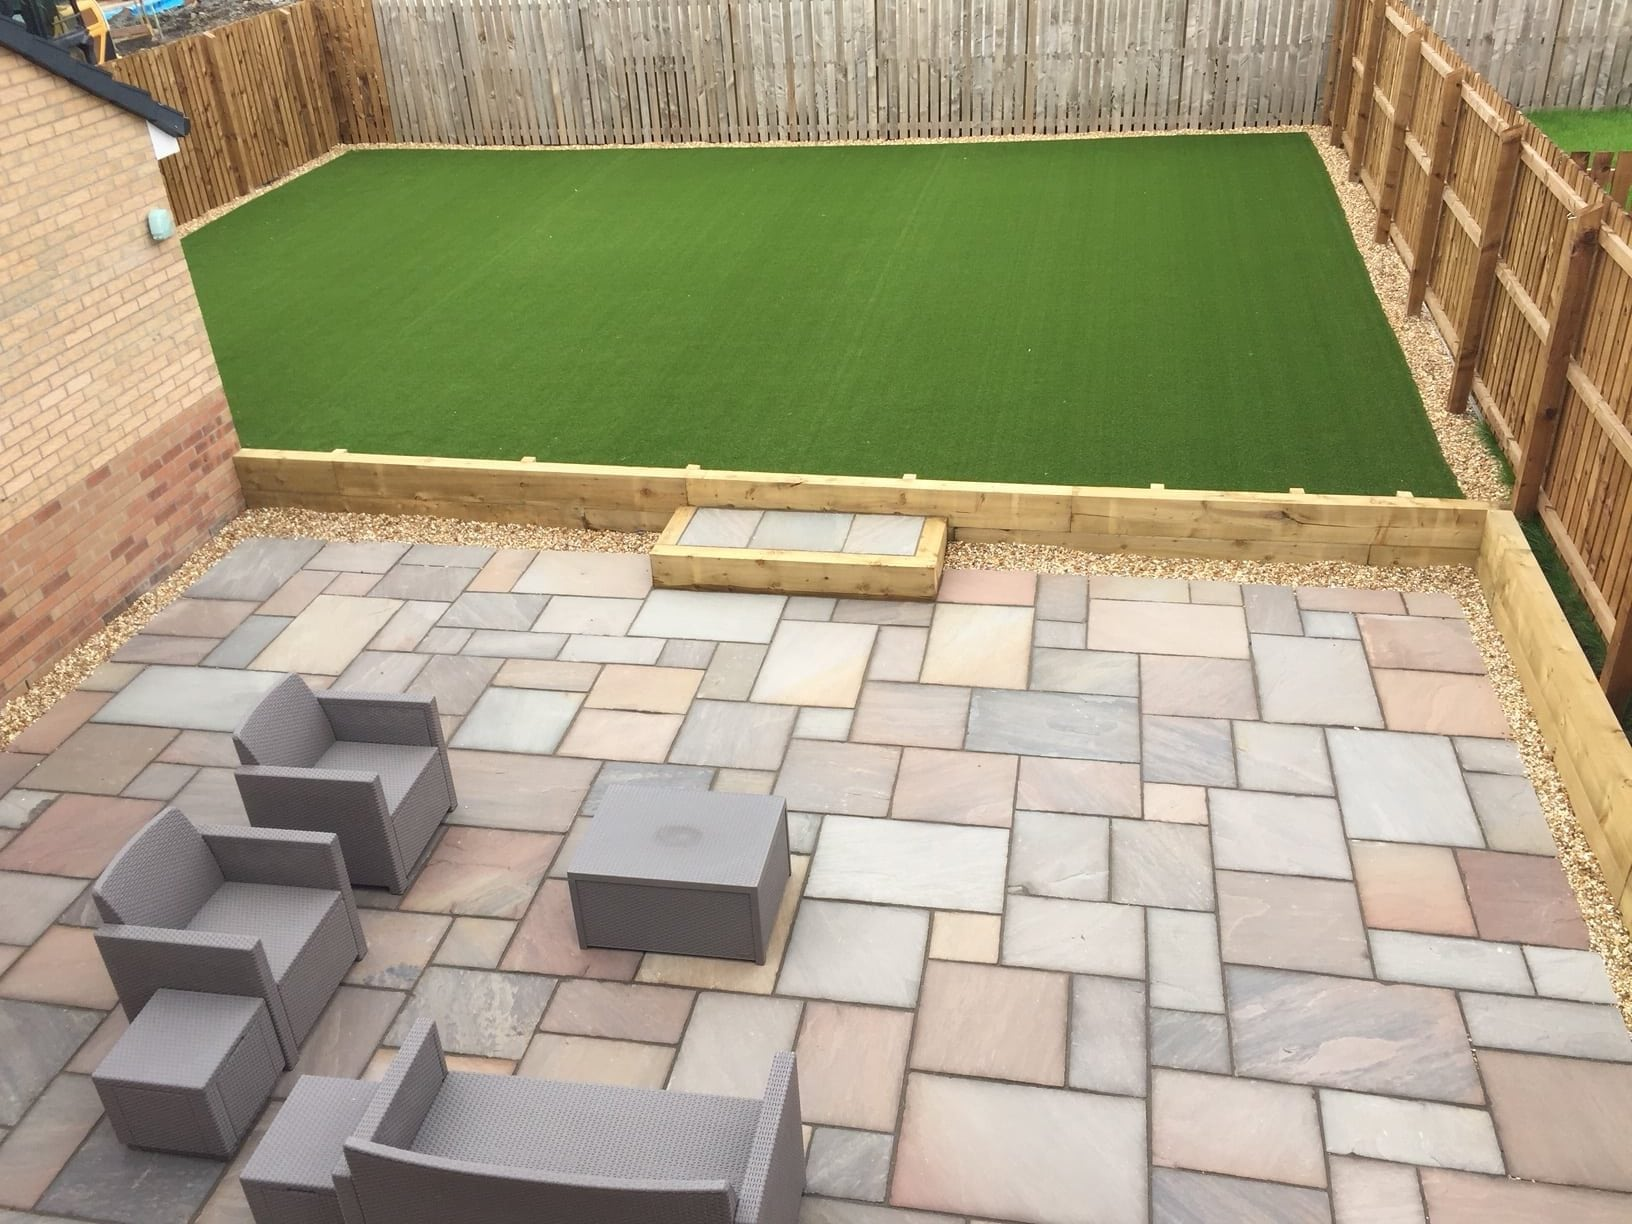 Artificial Lawn And Paving Installation Motherwell A Case